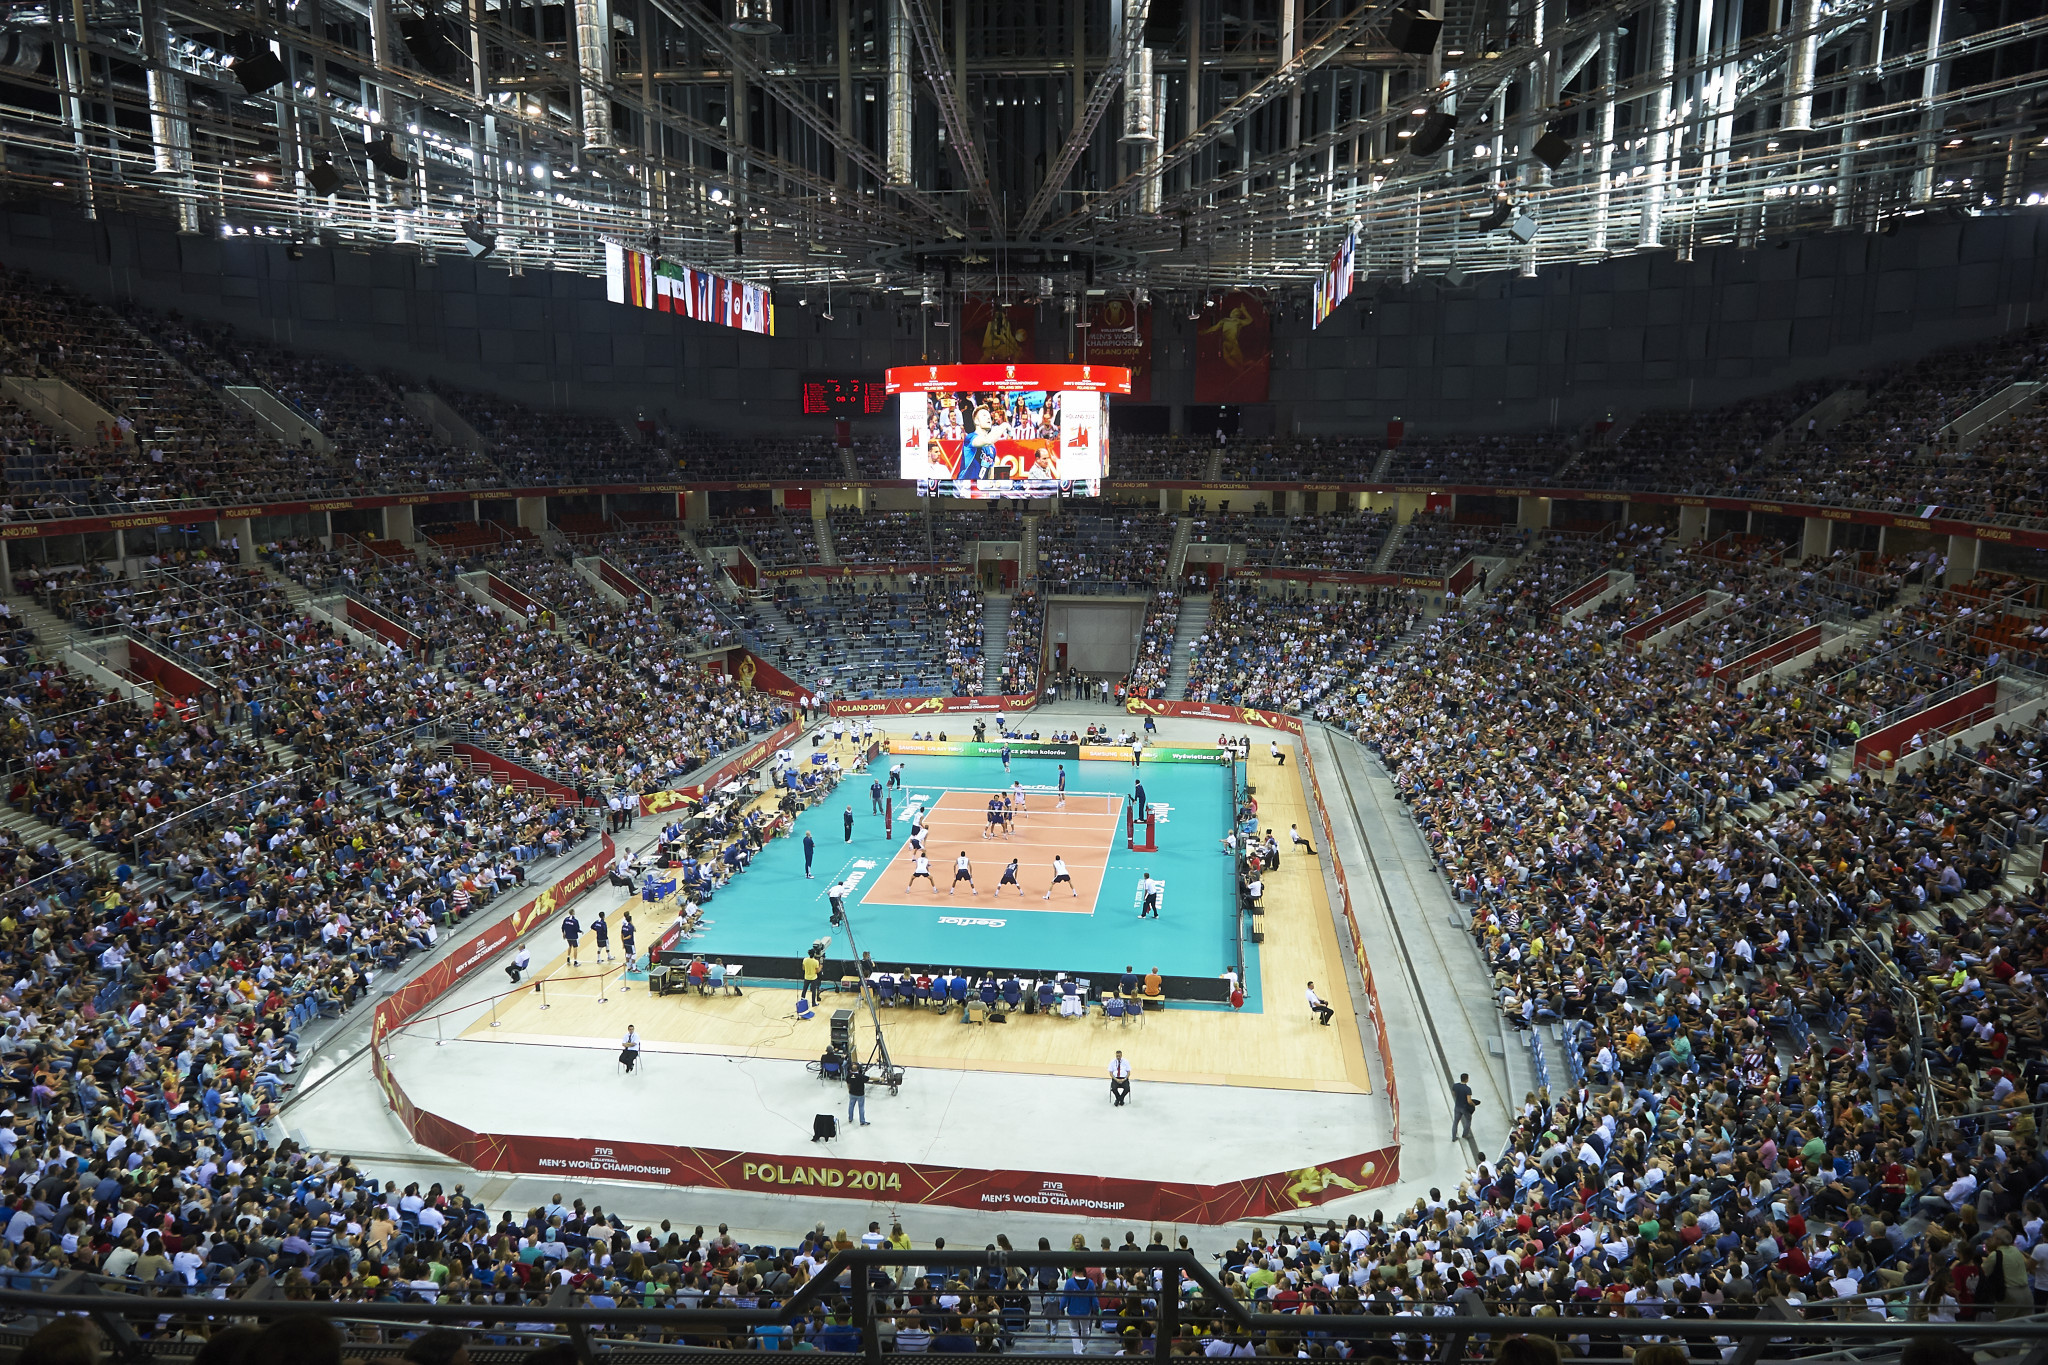 Kraków hosted the 2014 Men's Volleyball World Championship ©Getty Images